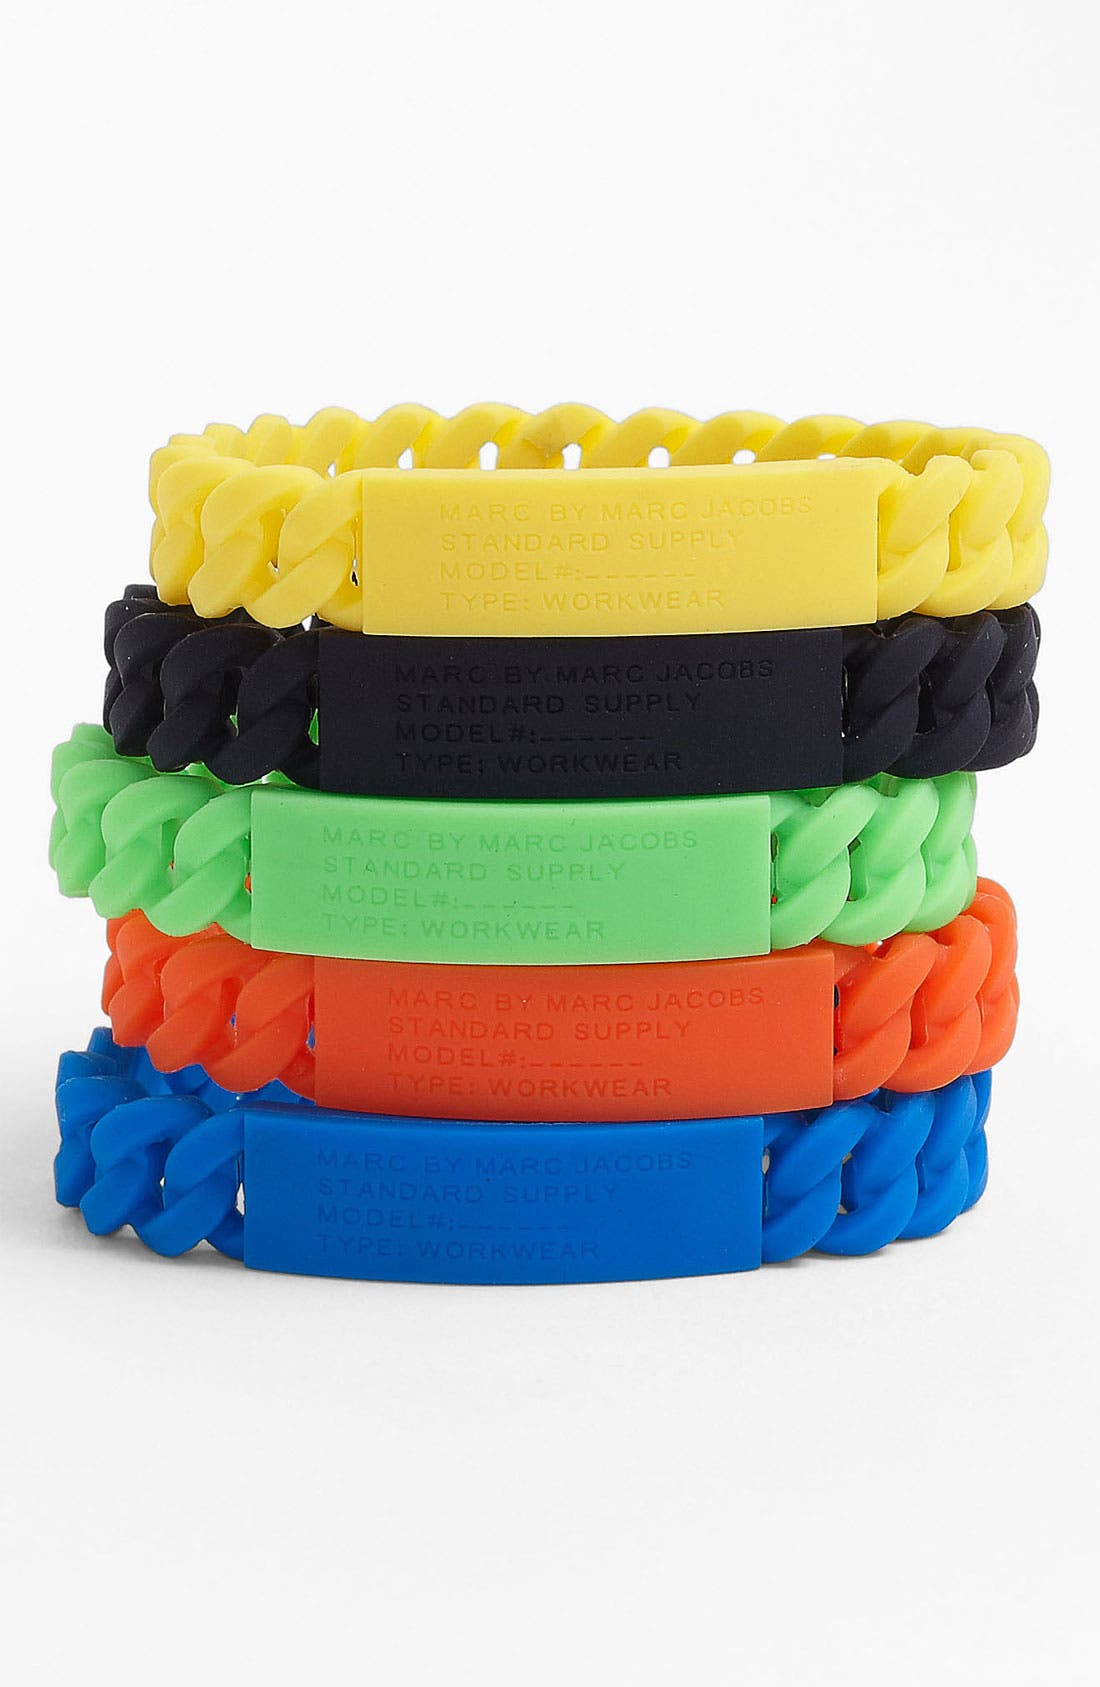 Main Image - MARC BY MARC JACOBS 'Rubber Standard Supply' Stretch ID Bracelet